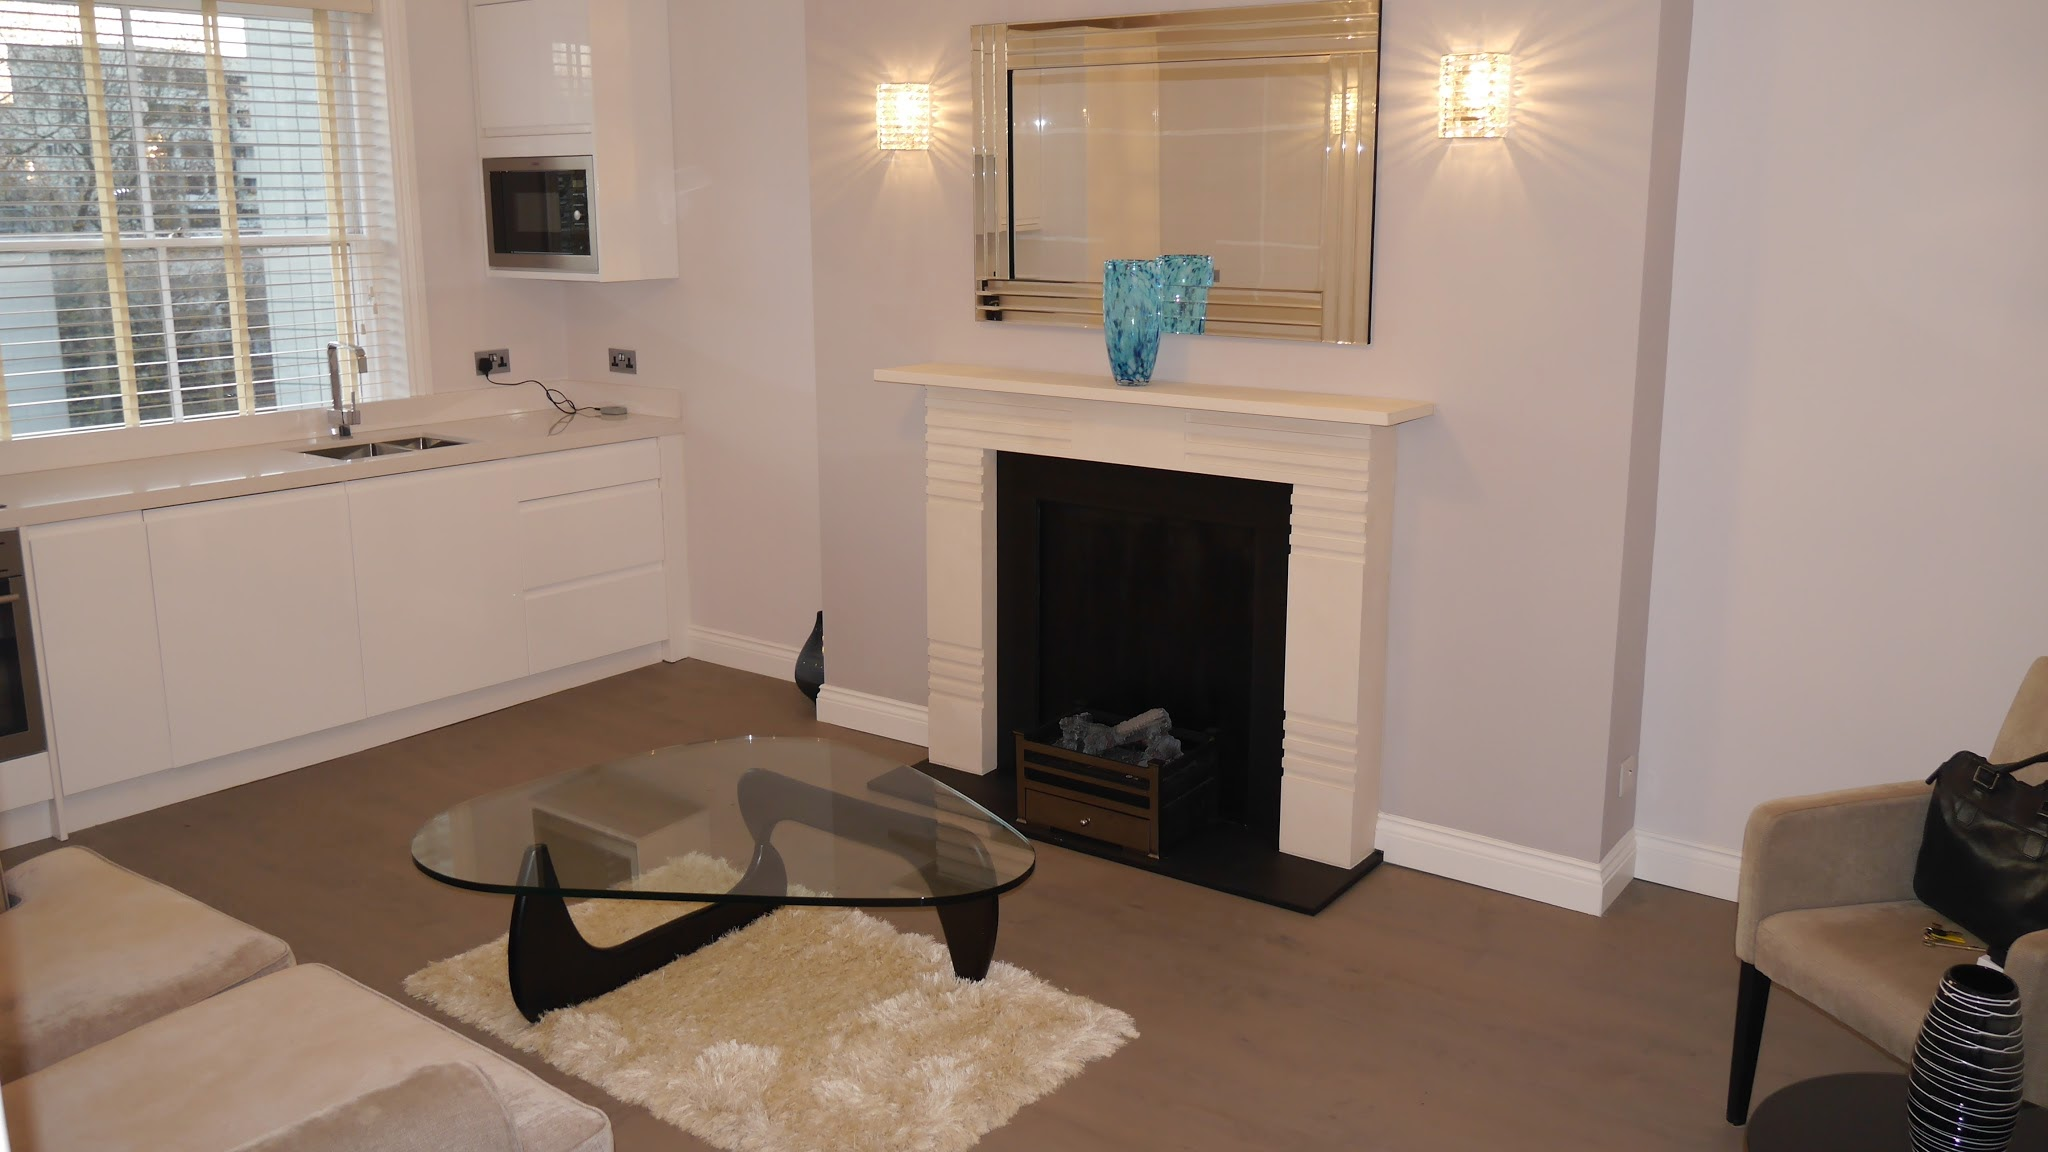 Luxury 3 Bed 2 Bath in Paddington Central London3 Bedrooms Flat   Apartment to Rent for up to  1500 per week   London. 2 Bedroom Flats For Rent In Central London. Home Design Ideas